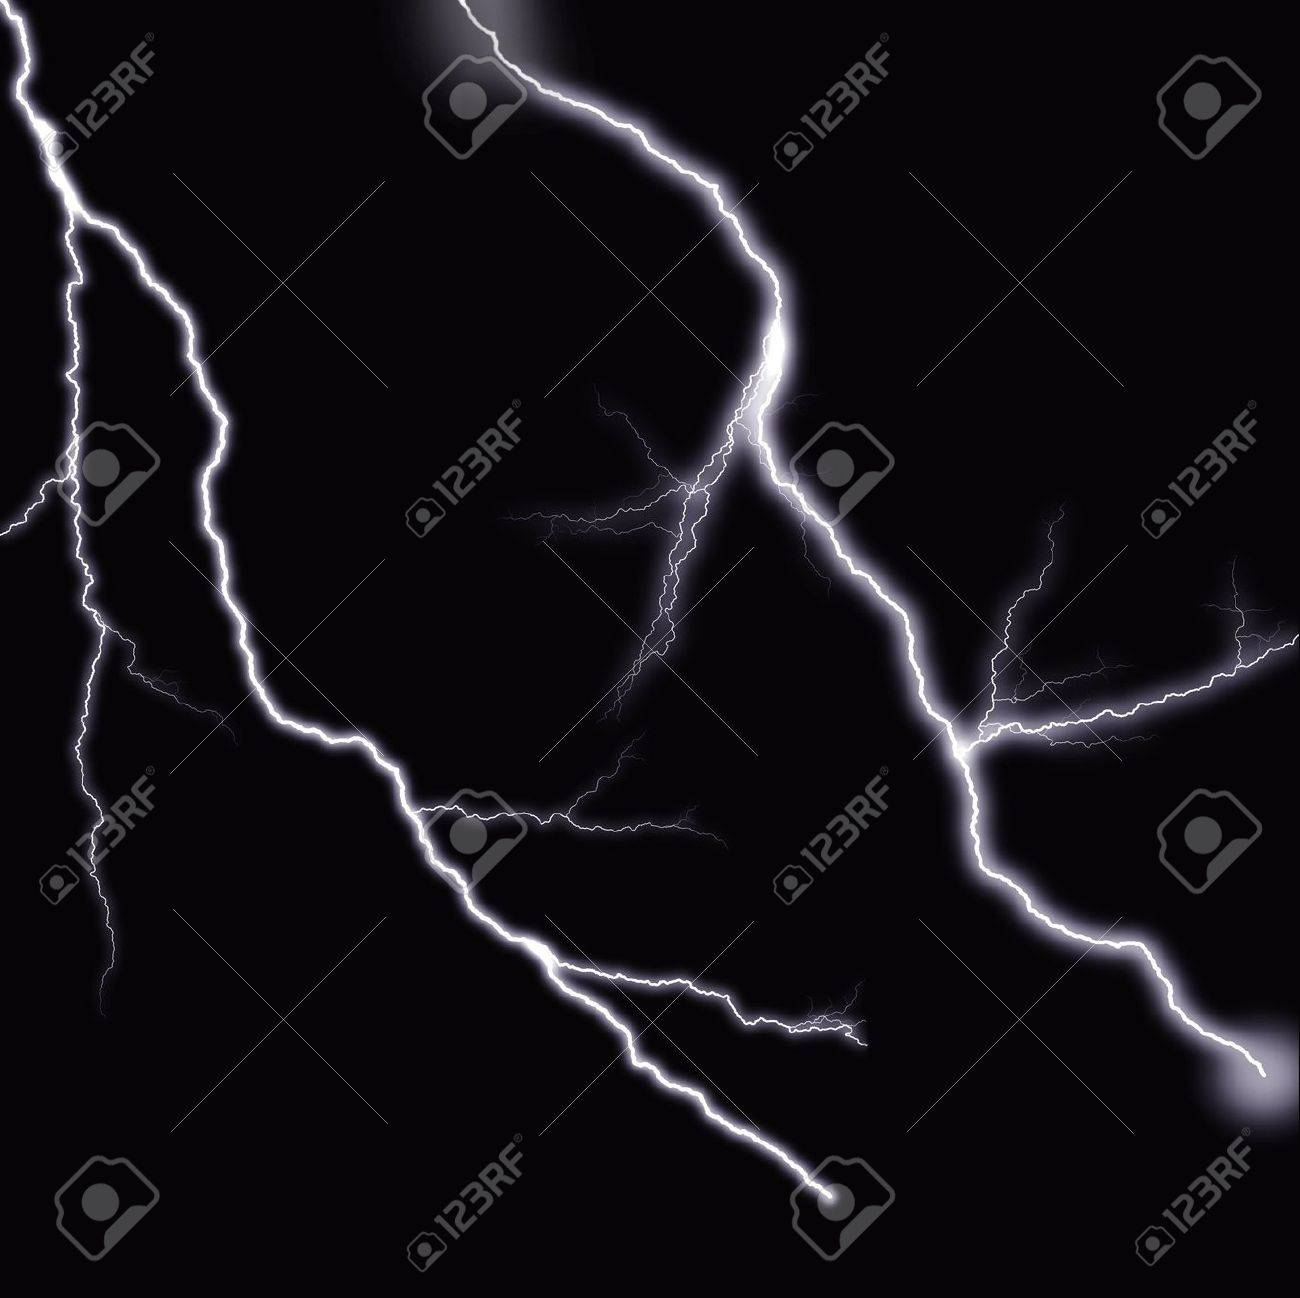 Black Background With Two Realistic Rendered Lightning Bolts Stock